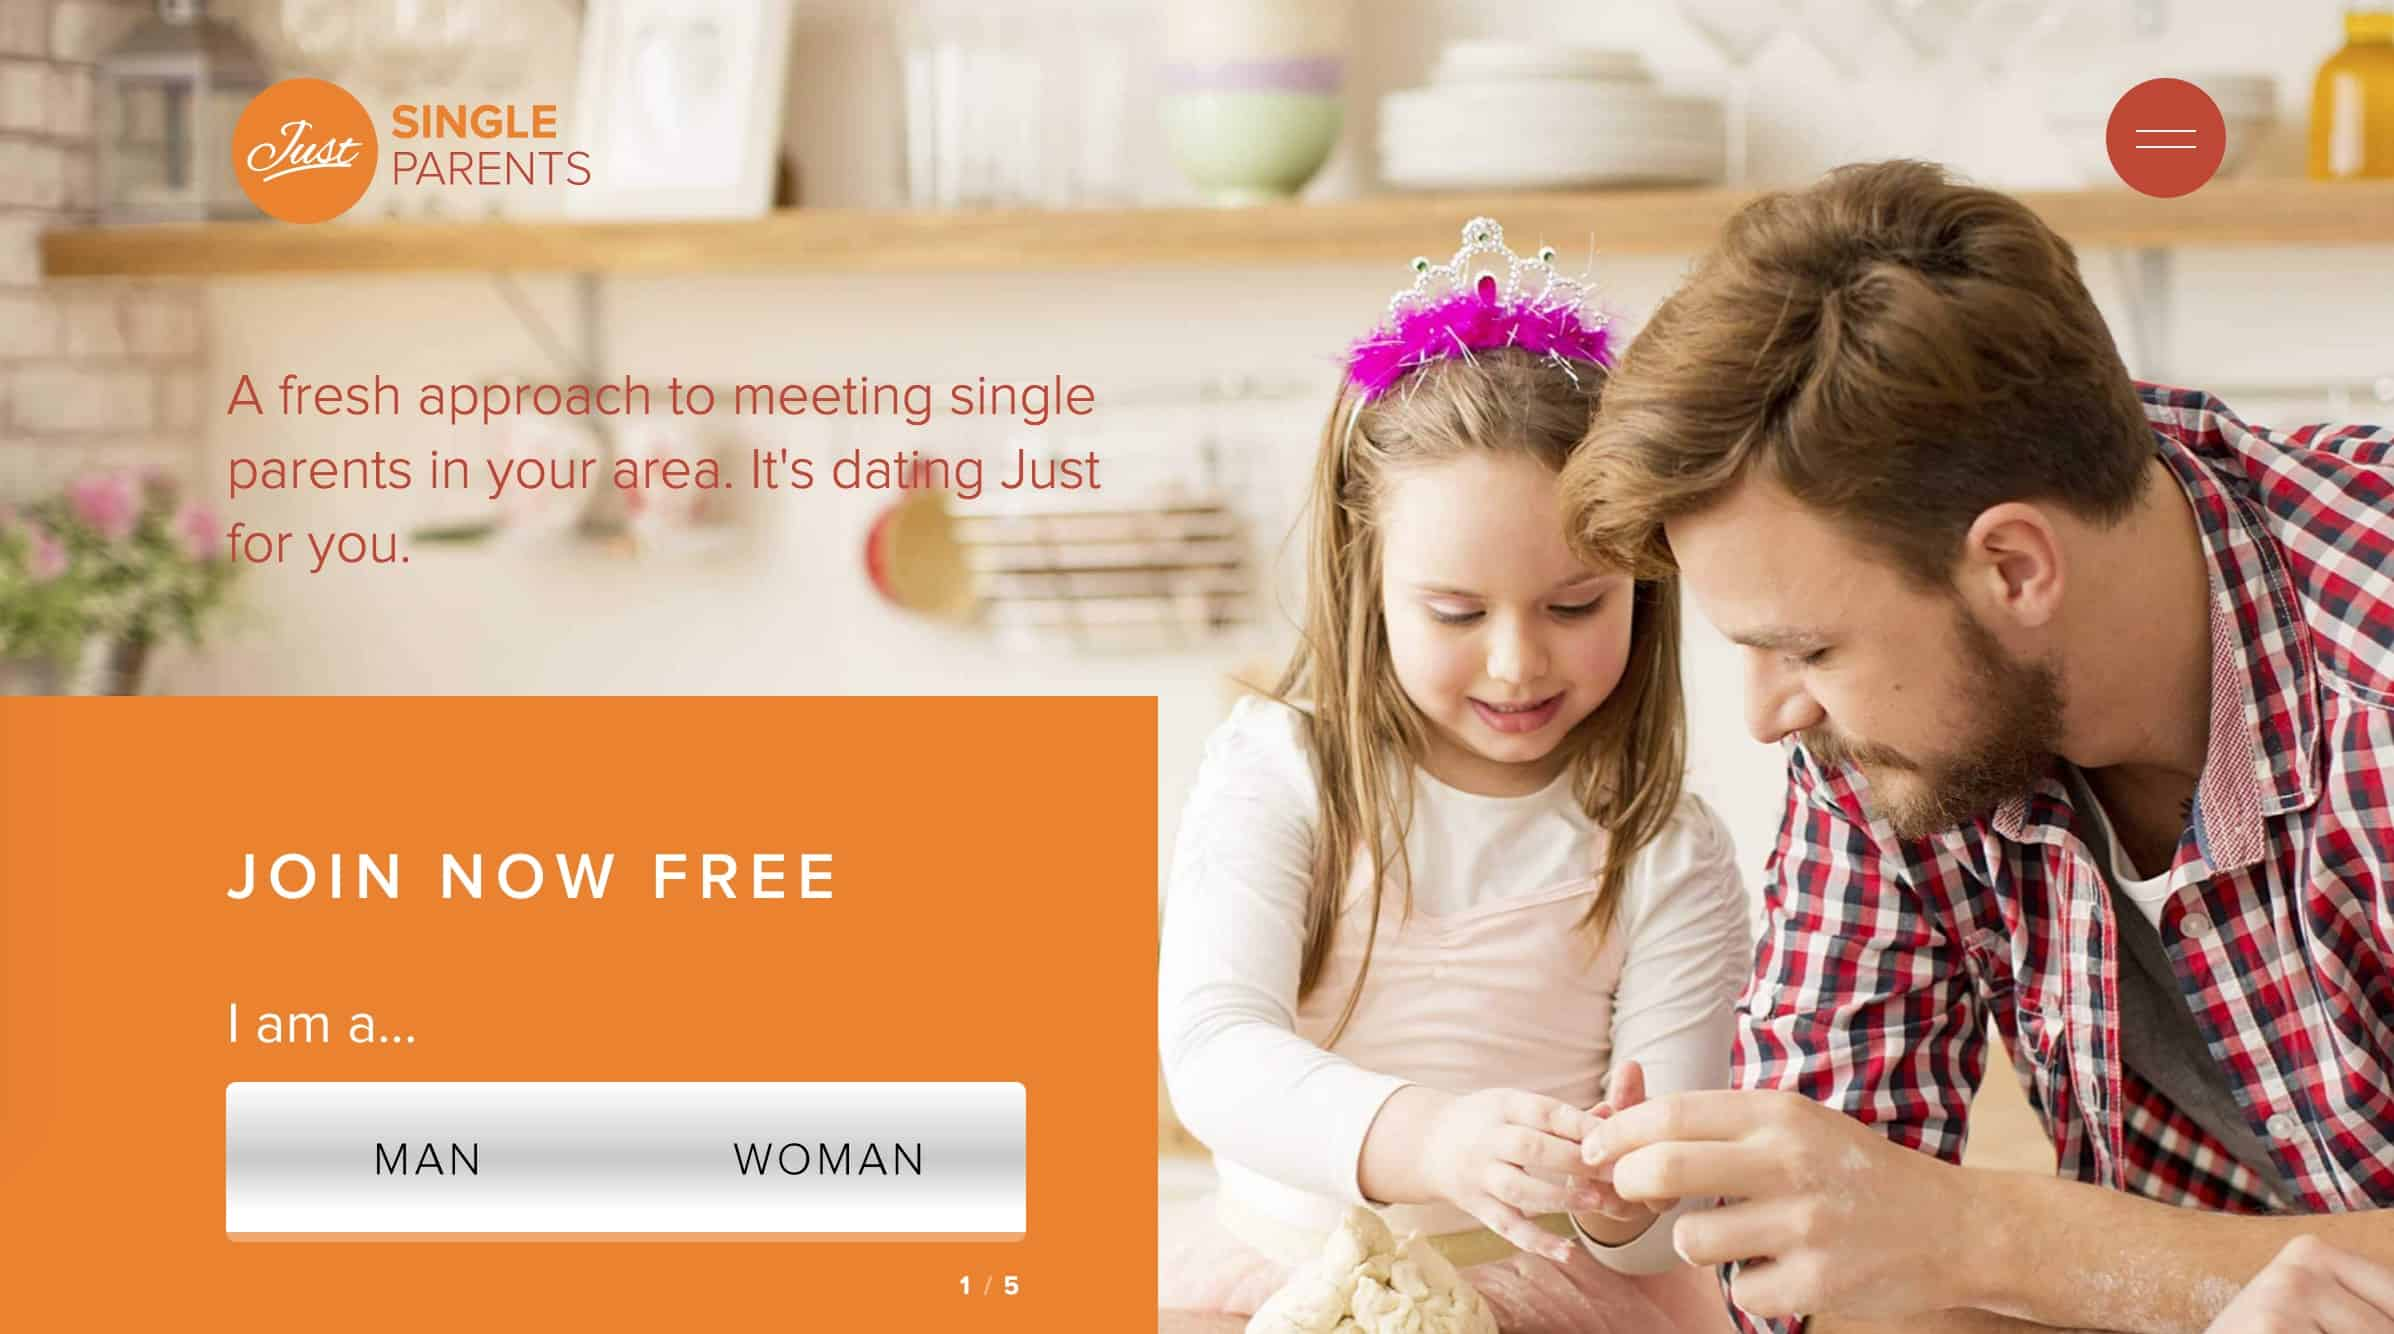 dating sites for moms For single parents, there are some specific online dating sites geared just for them here, we review a few of those sites and give you the good and the bad of each.